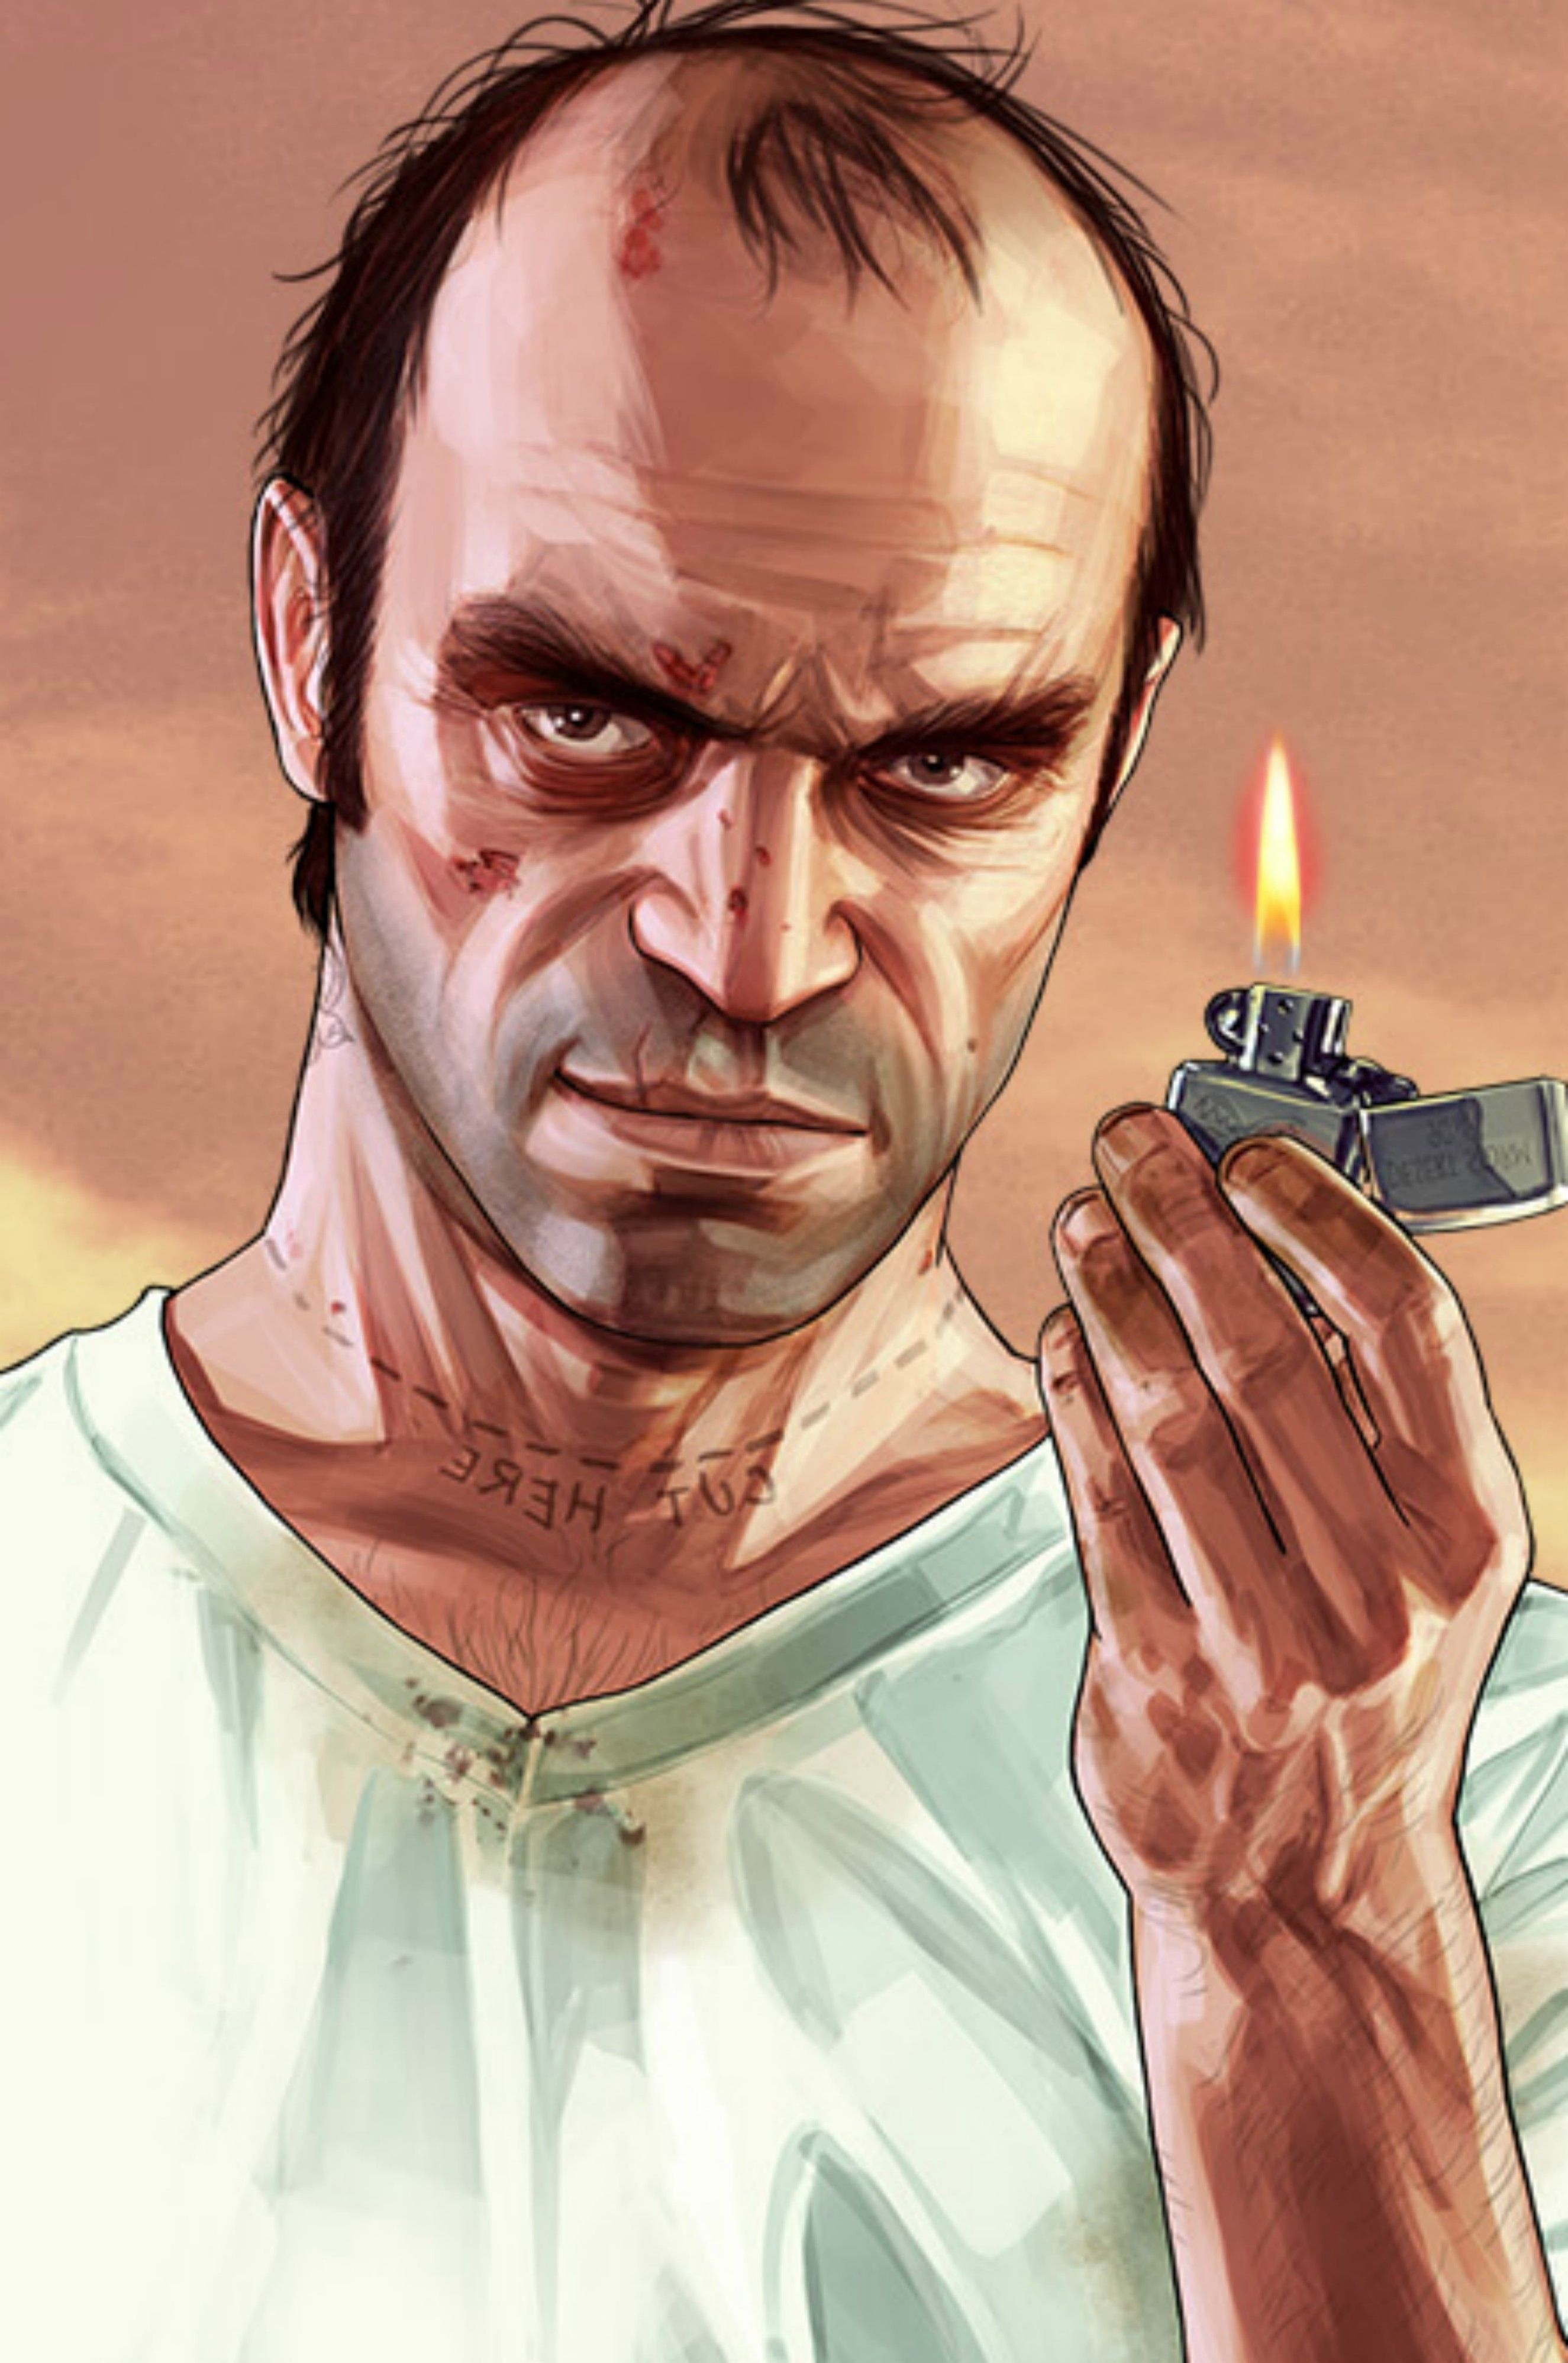 What GTA V character do you prefer, Michael Franklin or